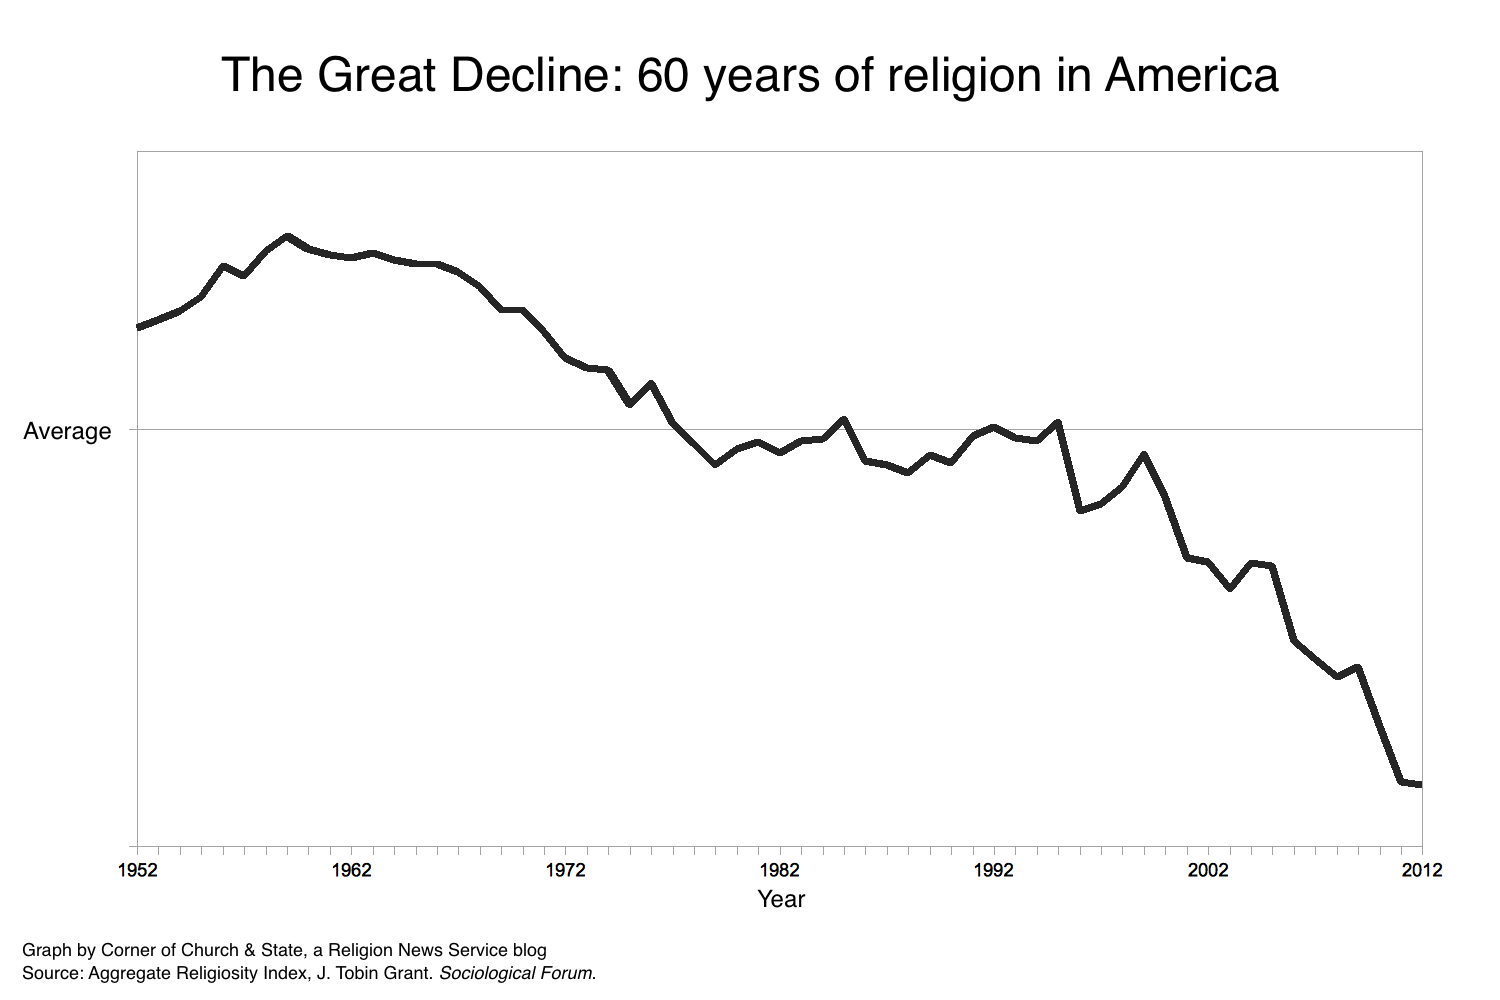 The Great Decline: 60 years of religion in one graph - Religion News